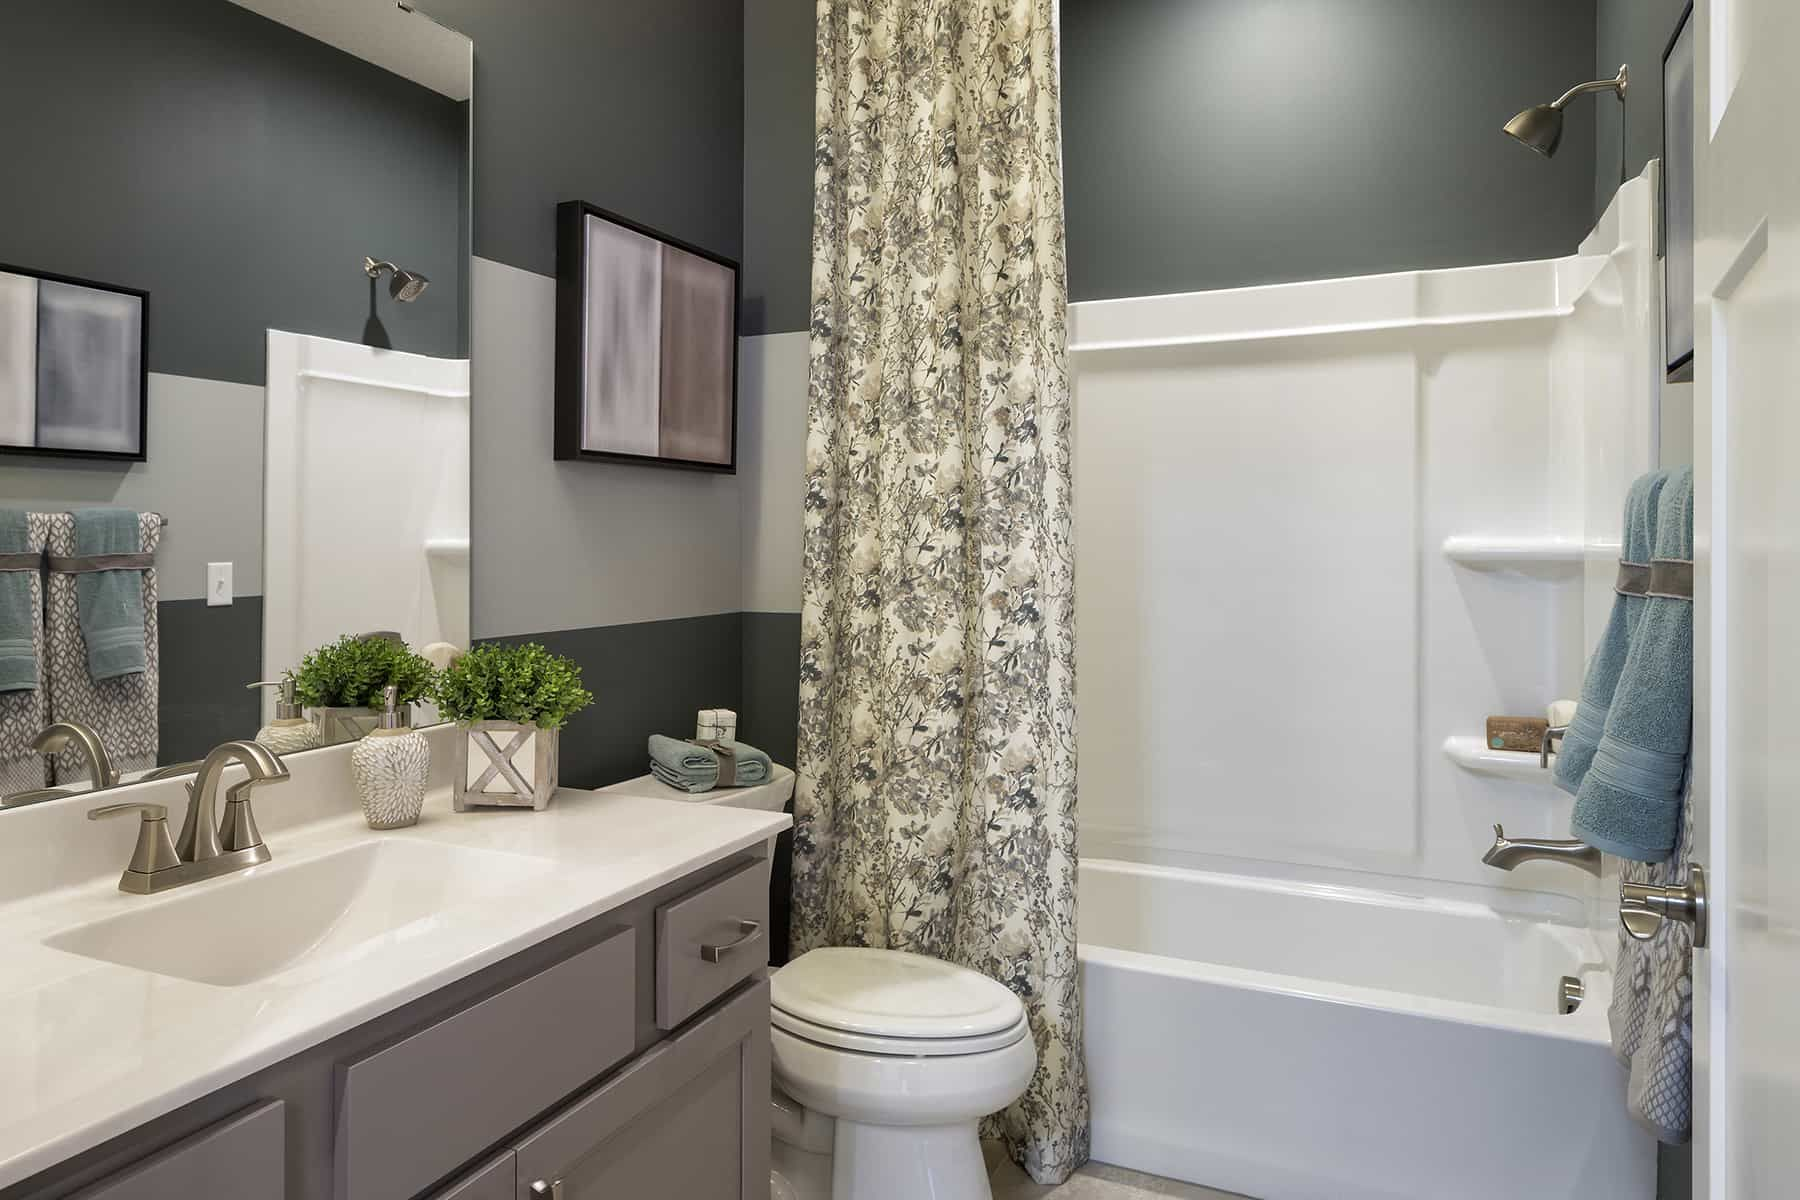 Bathroom featured in the Linden II By M/I Homes in Minneapolis-St. Paul, MN